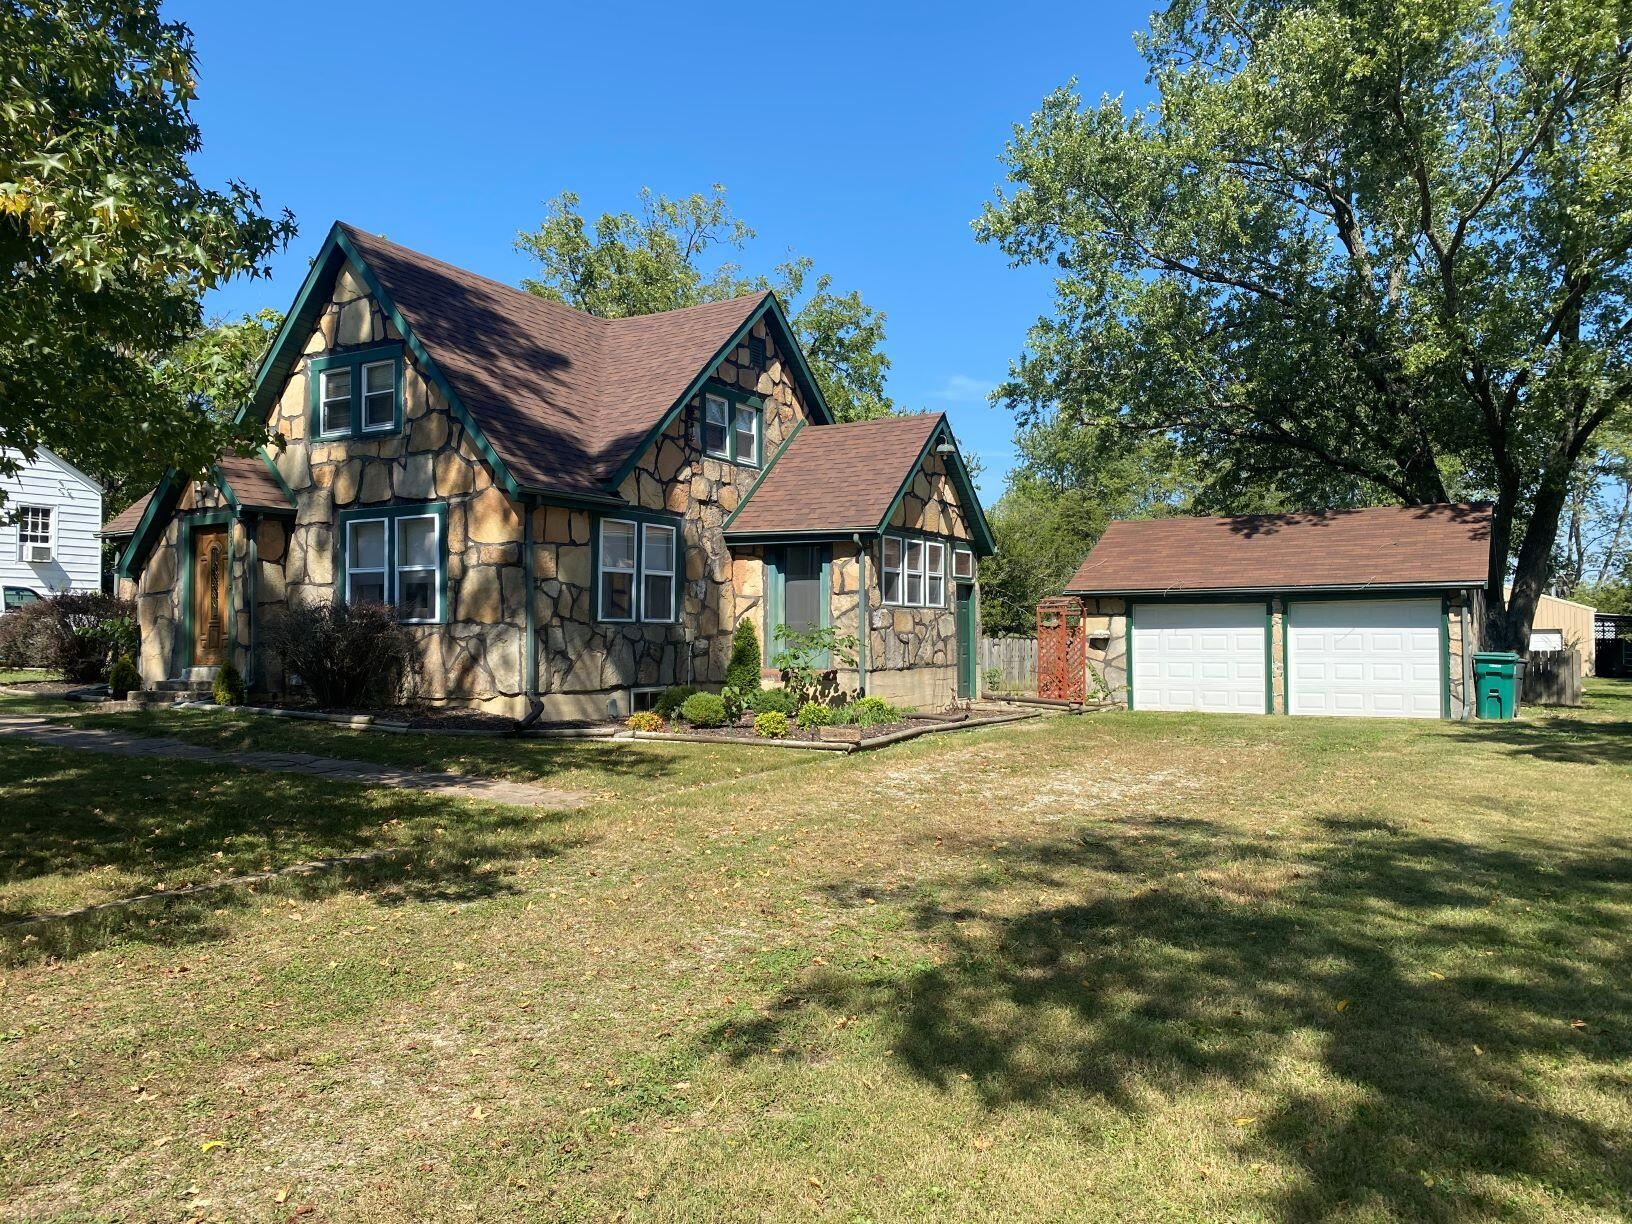 Photo of 305 Pine Grove Road, Willow Springs, MO 65793 (MLS # 60201973)